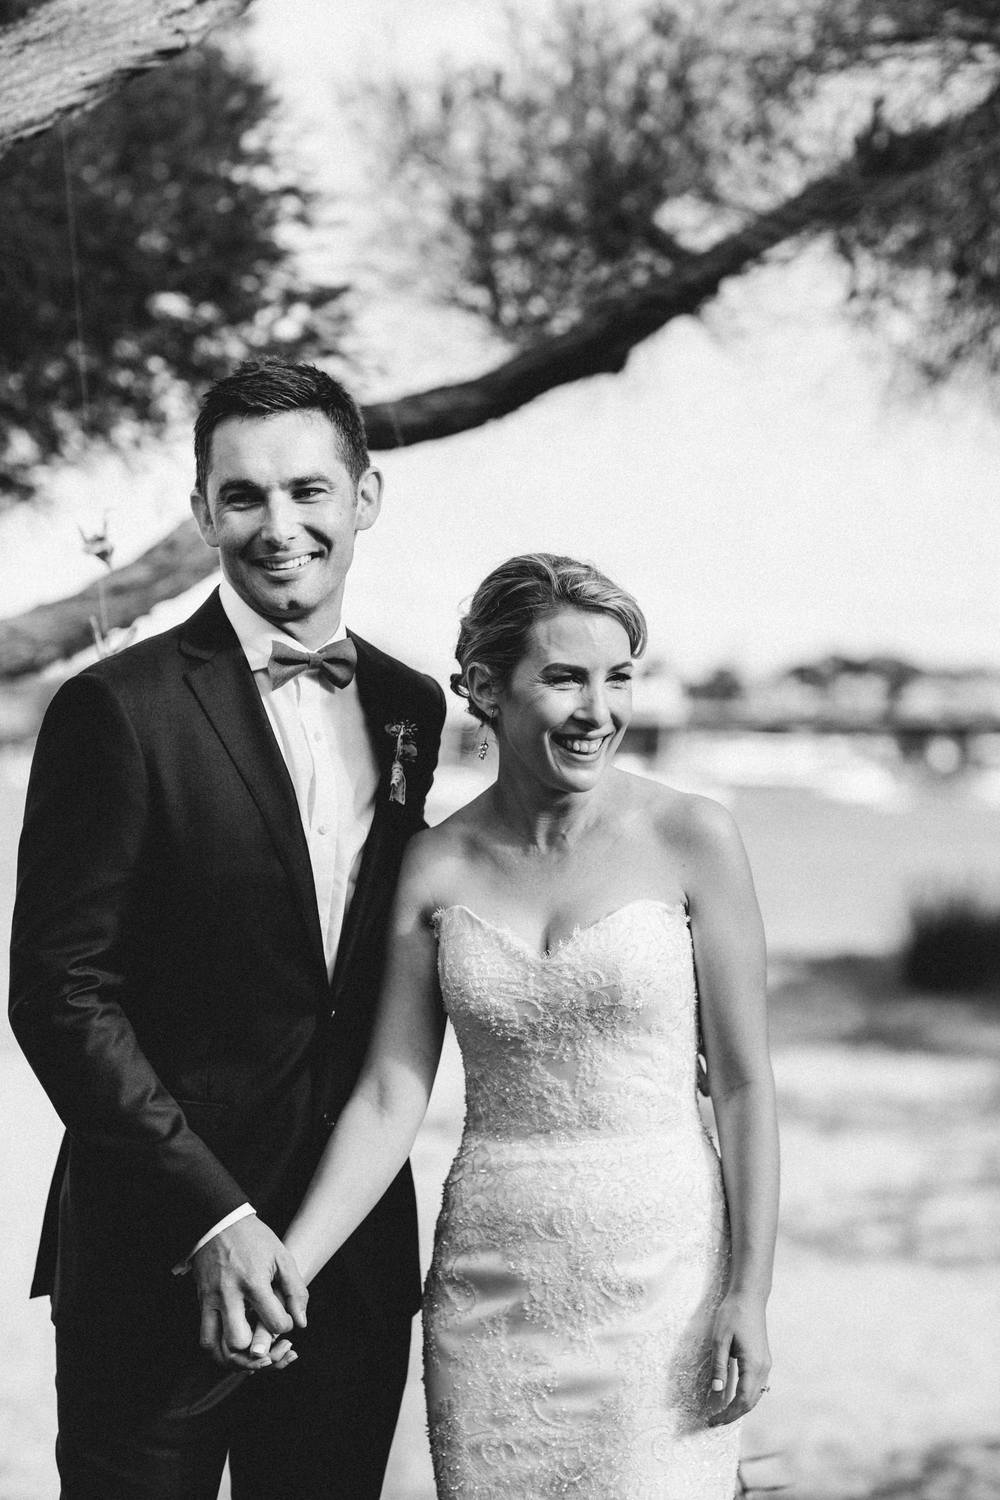 AmandaAlessi_WeddingPhotography_Perth_05.jpg